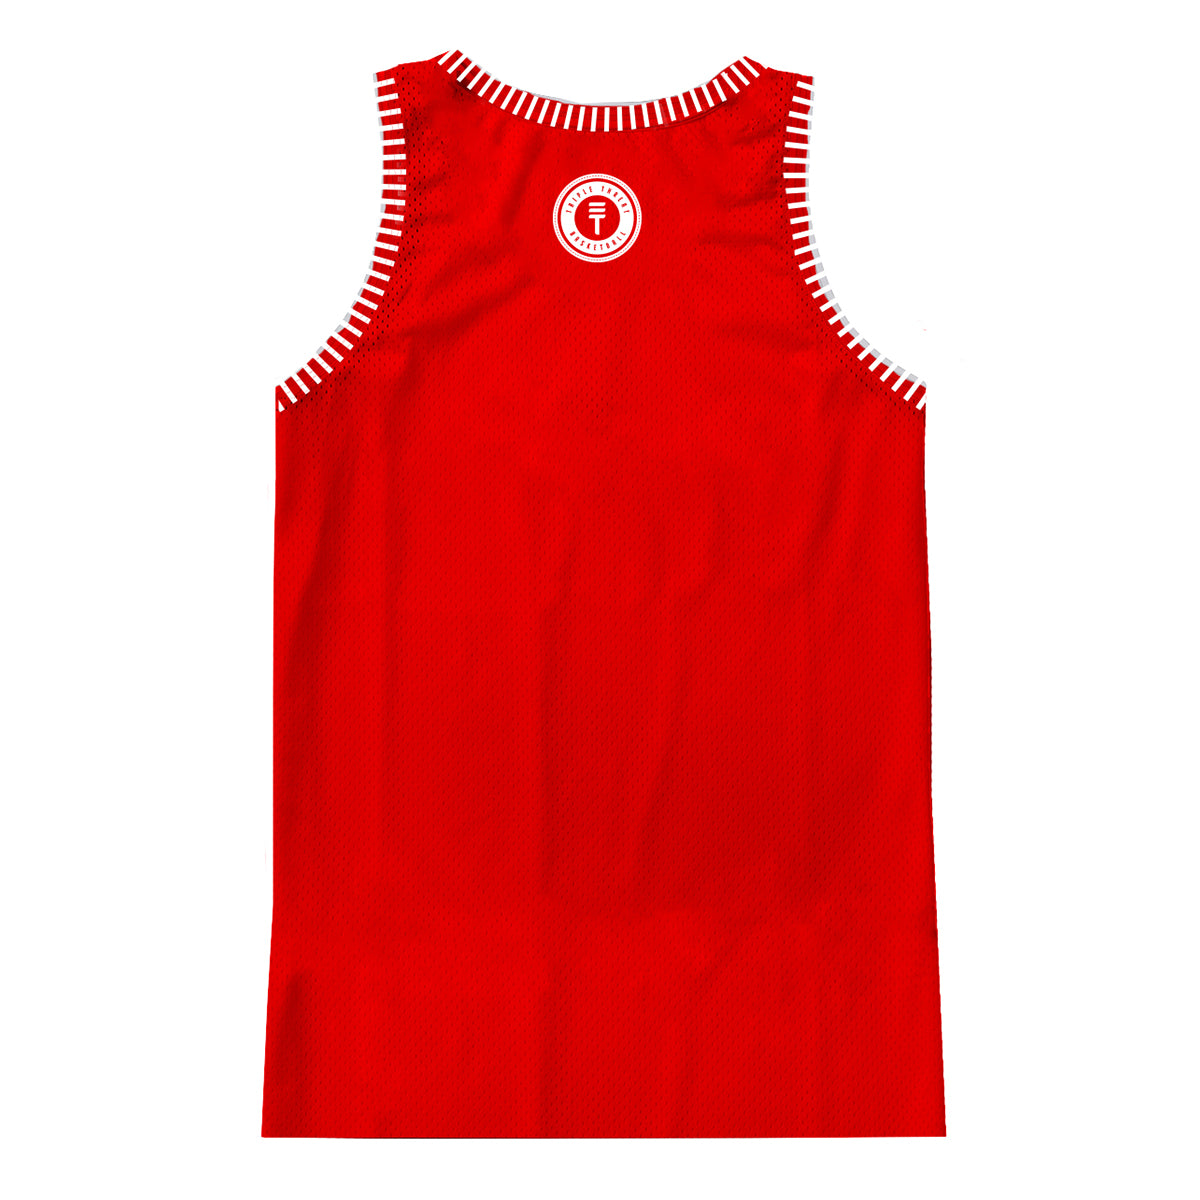 SHIELD SINGLET - RED